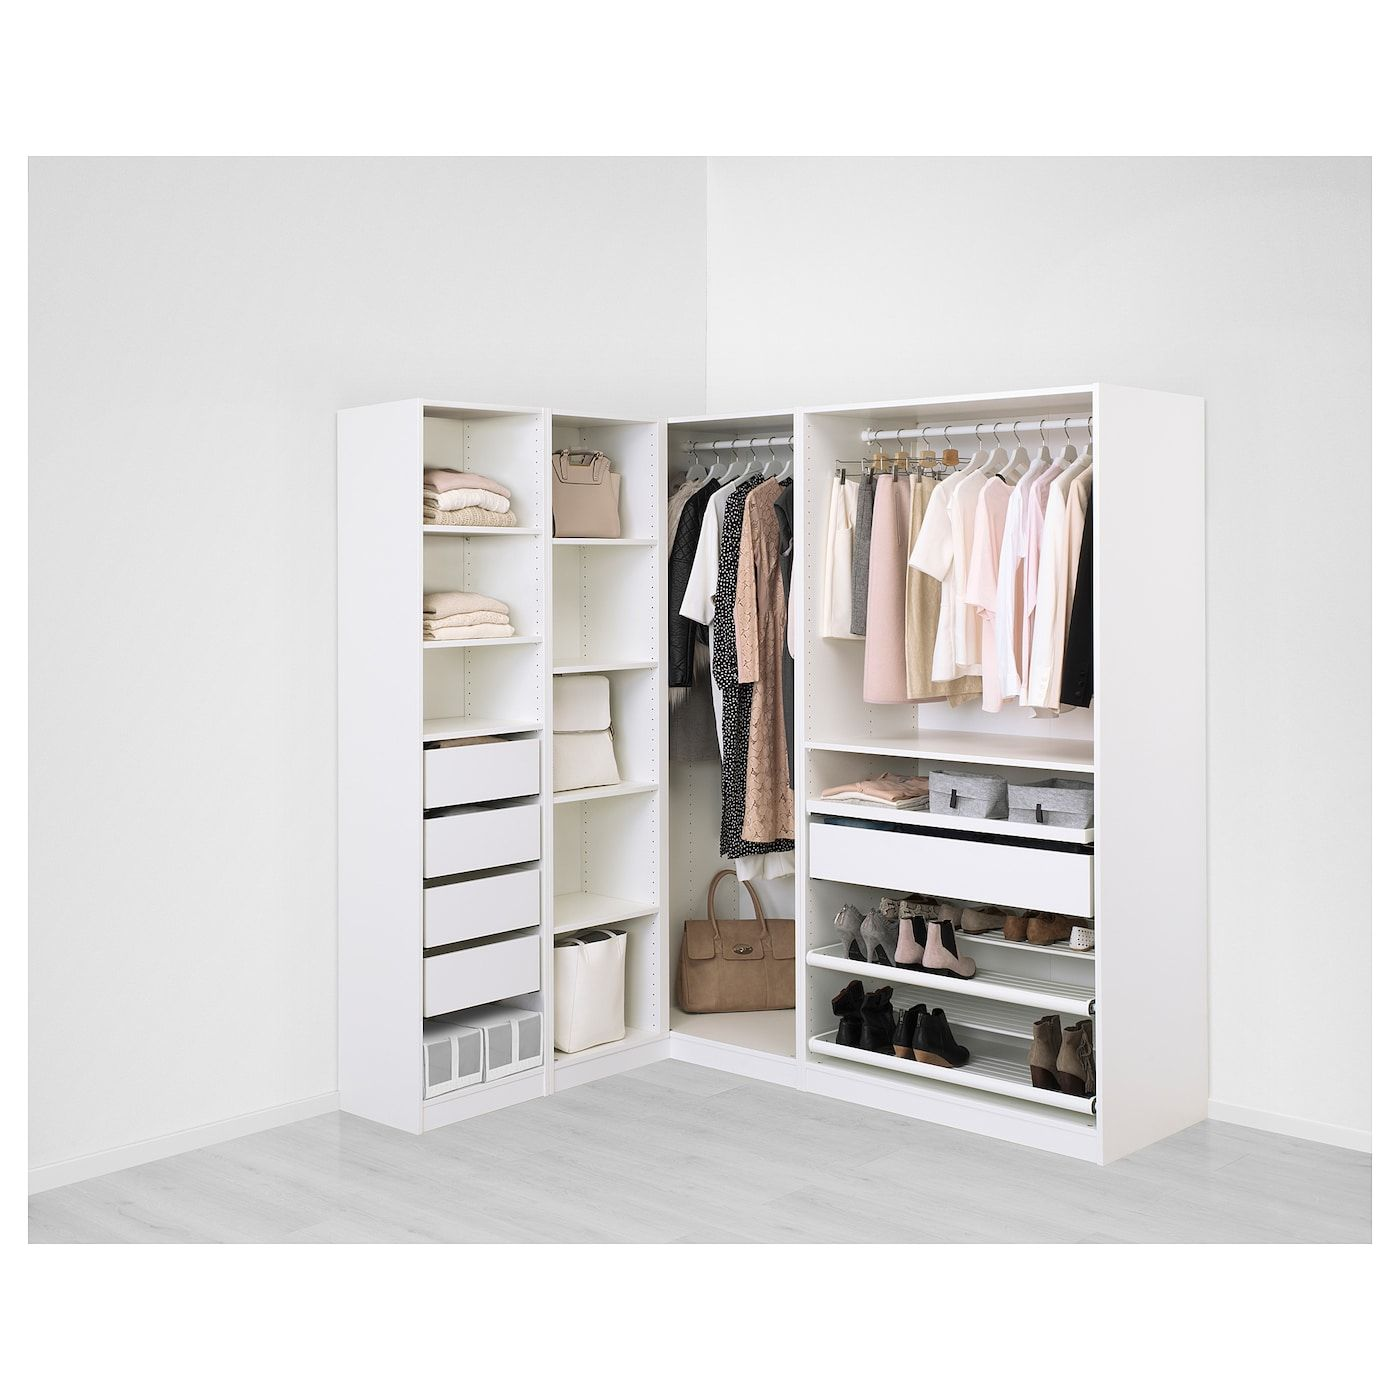 Ikea Pax Corner Wardrobe White 10 Year Limited Warranty Read About The Terms In The Limite Eckkleiderschrank Eckschrank Kleiderschrank Pax Kleiderschrank